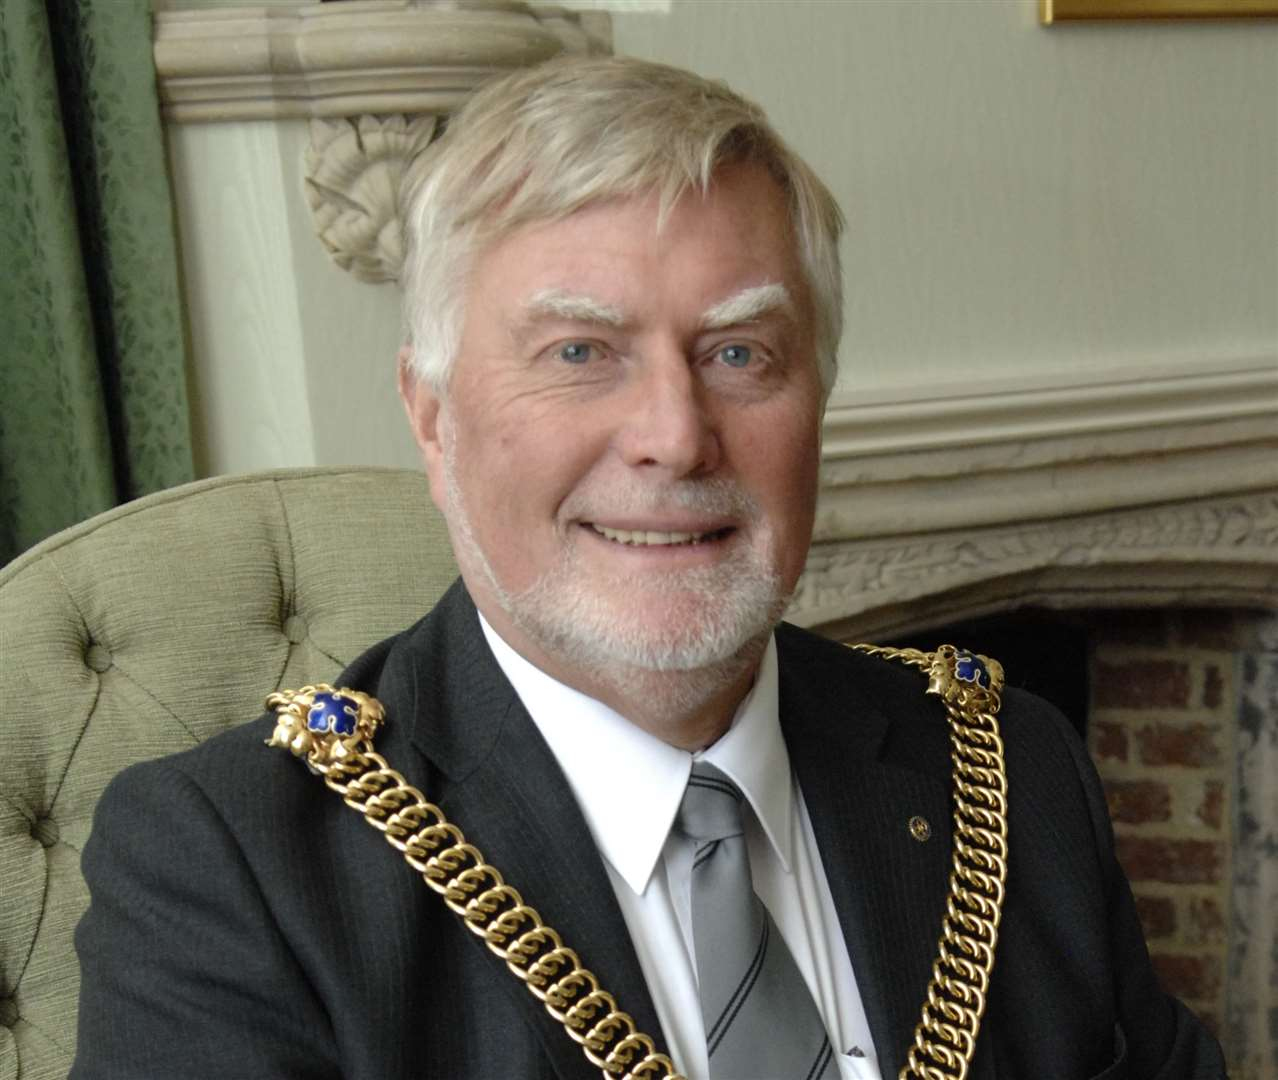 Cllr Ian Thomas, pictured in 2011